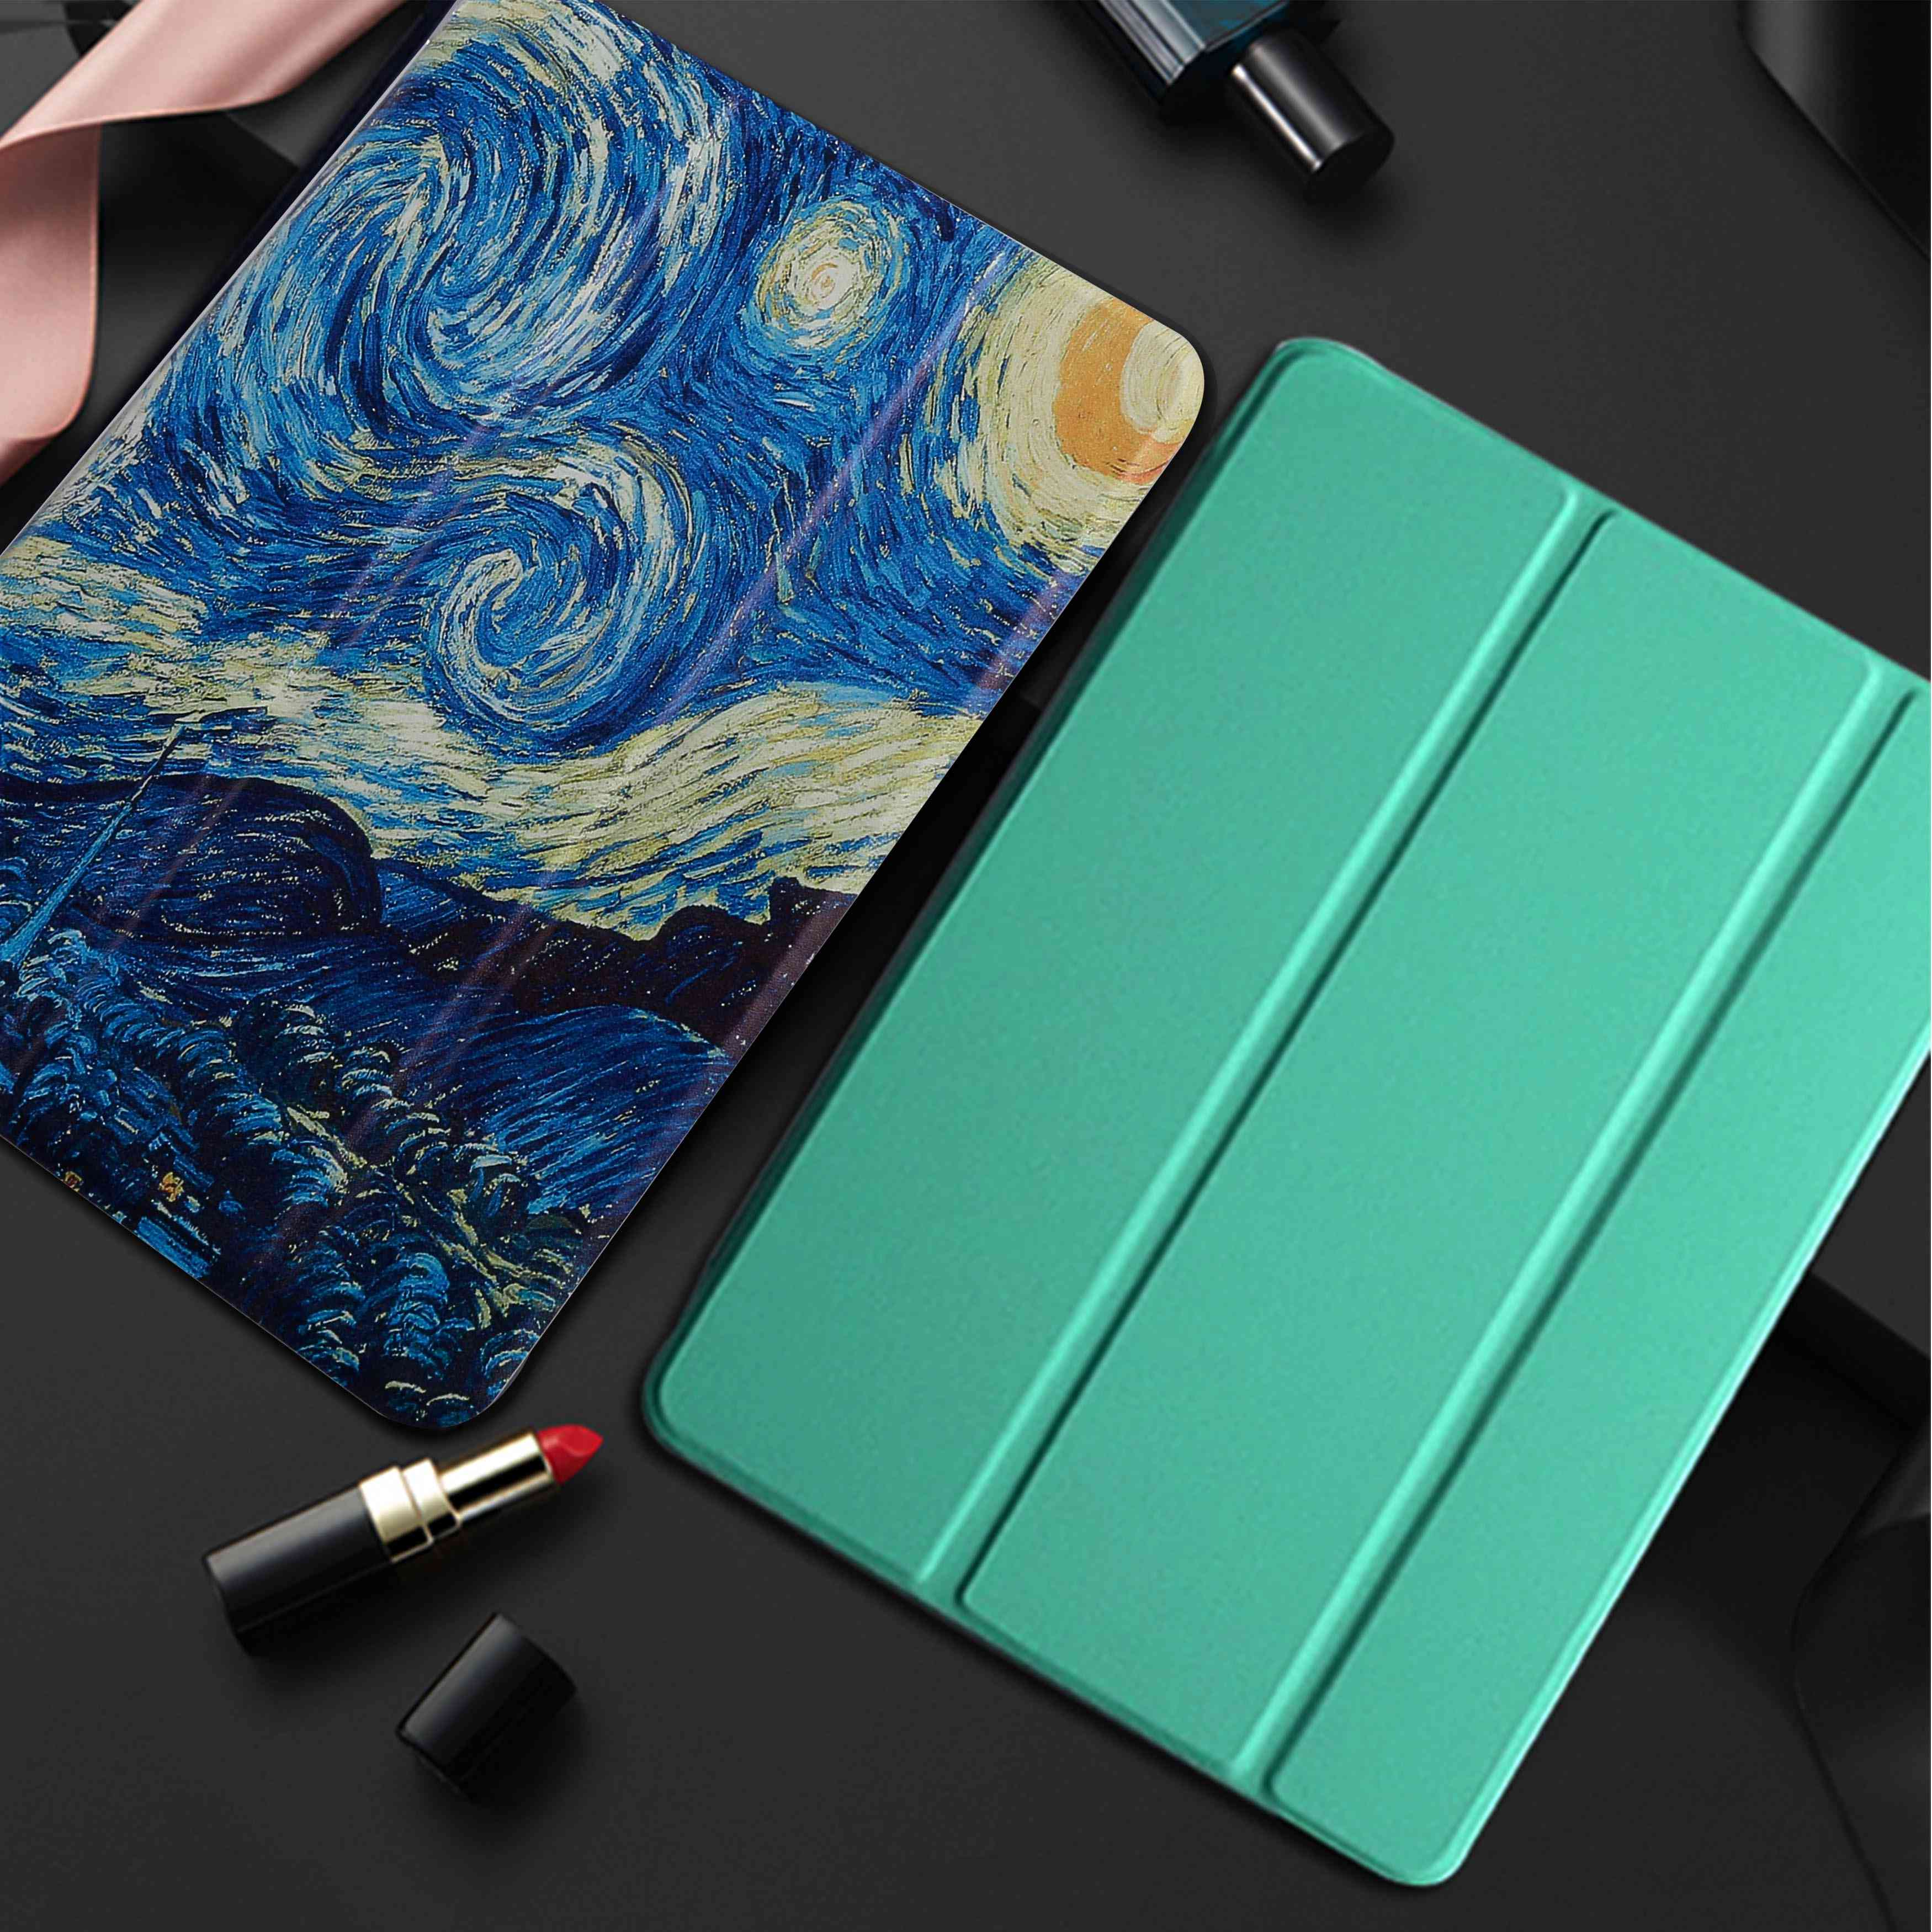 Pu Leather Stand - Auto Sleep Smart Folio Cover For Ipad, Tablet, Case